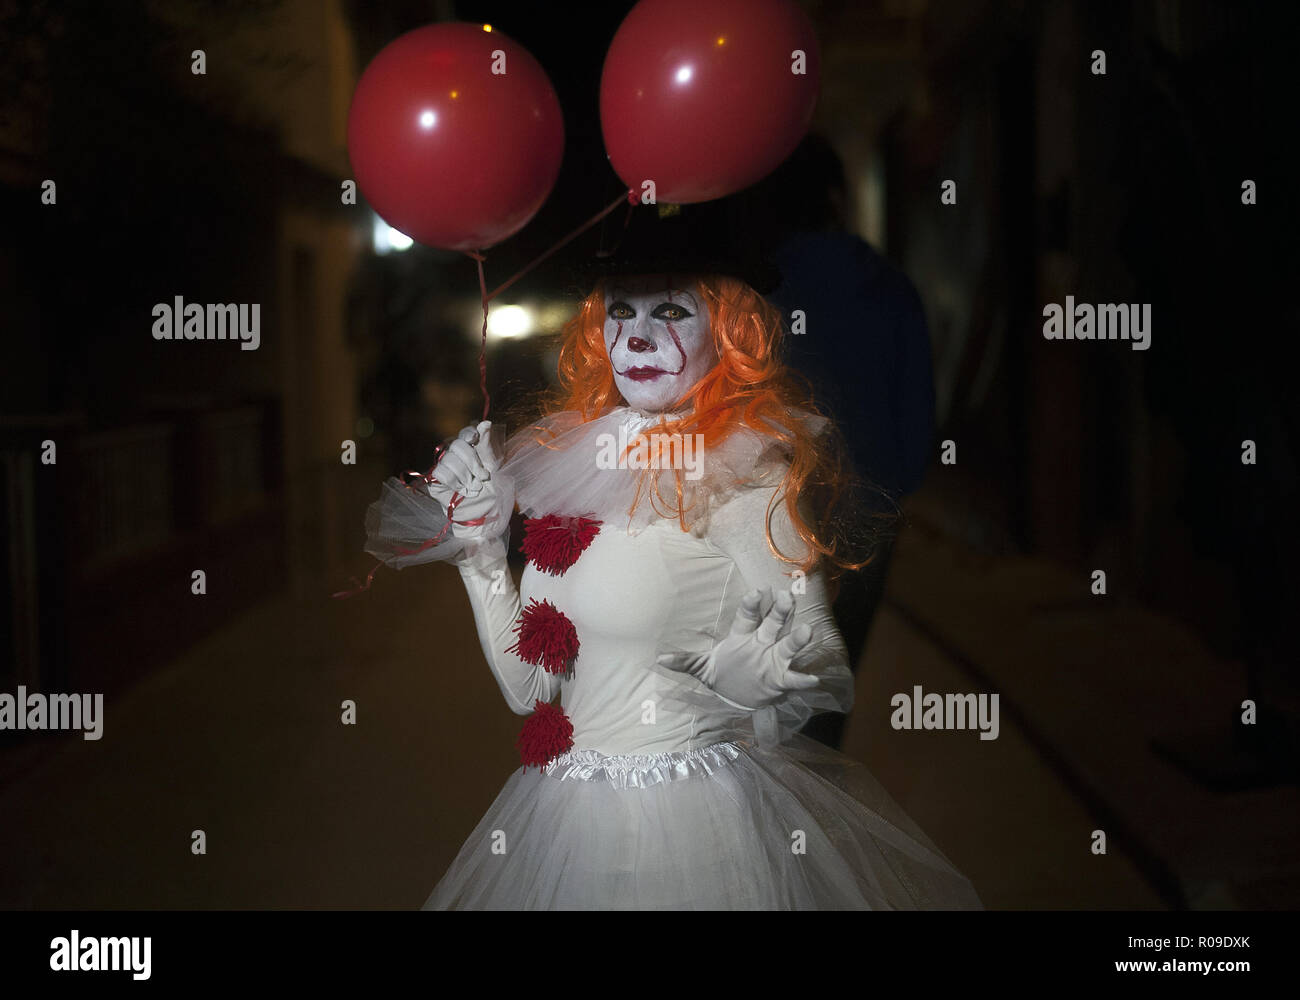 Malaga, Spain. 2nd Nov, 2018. A woman dressed up as 'Pennywise' takes part in the IV edition of ''Churriana Noche del Terror'' (Churriana Horror Night) to celebrates the Halloween night in the neighborhood of Churriana. For this occasion, the neighborhood of Churriana decided to move the event to this night because of rainy forecast during the night of 31 october, the Hallowen Day. Credit: Jesus Merida/SOPA Images/ZUMA Wire/Alamy Live News - Stock Image